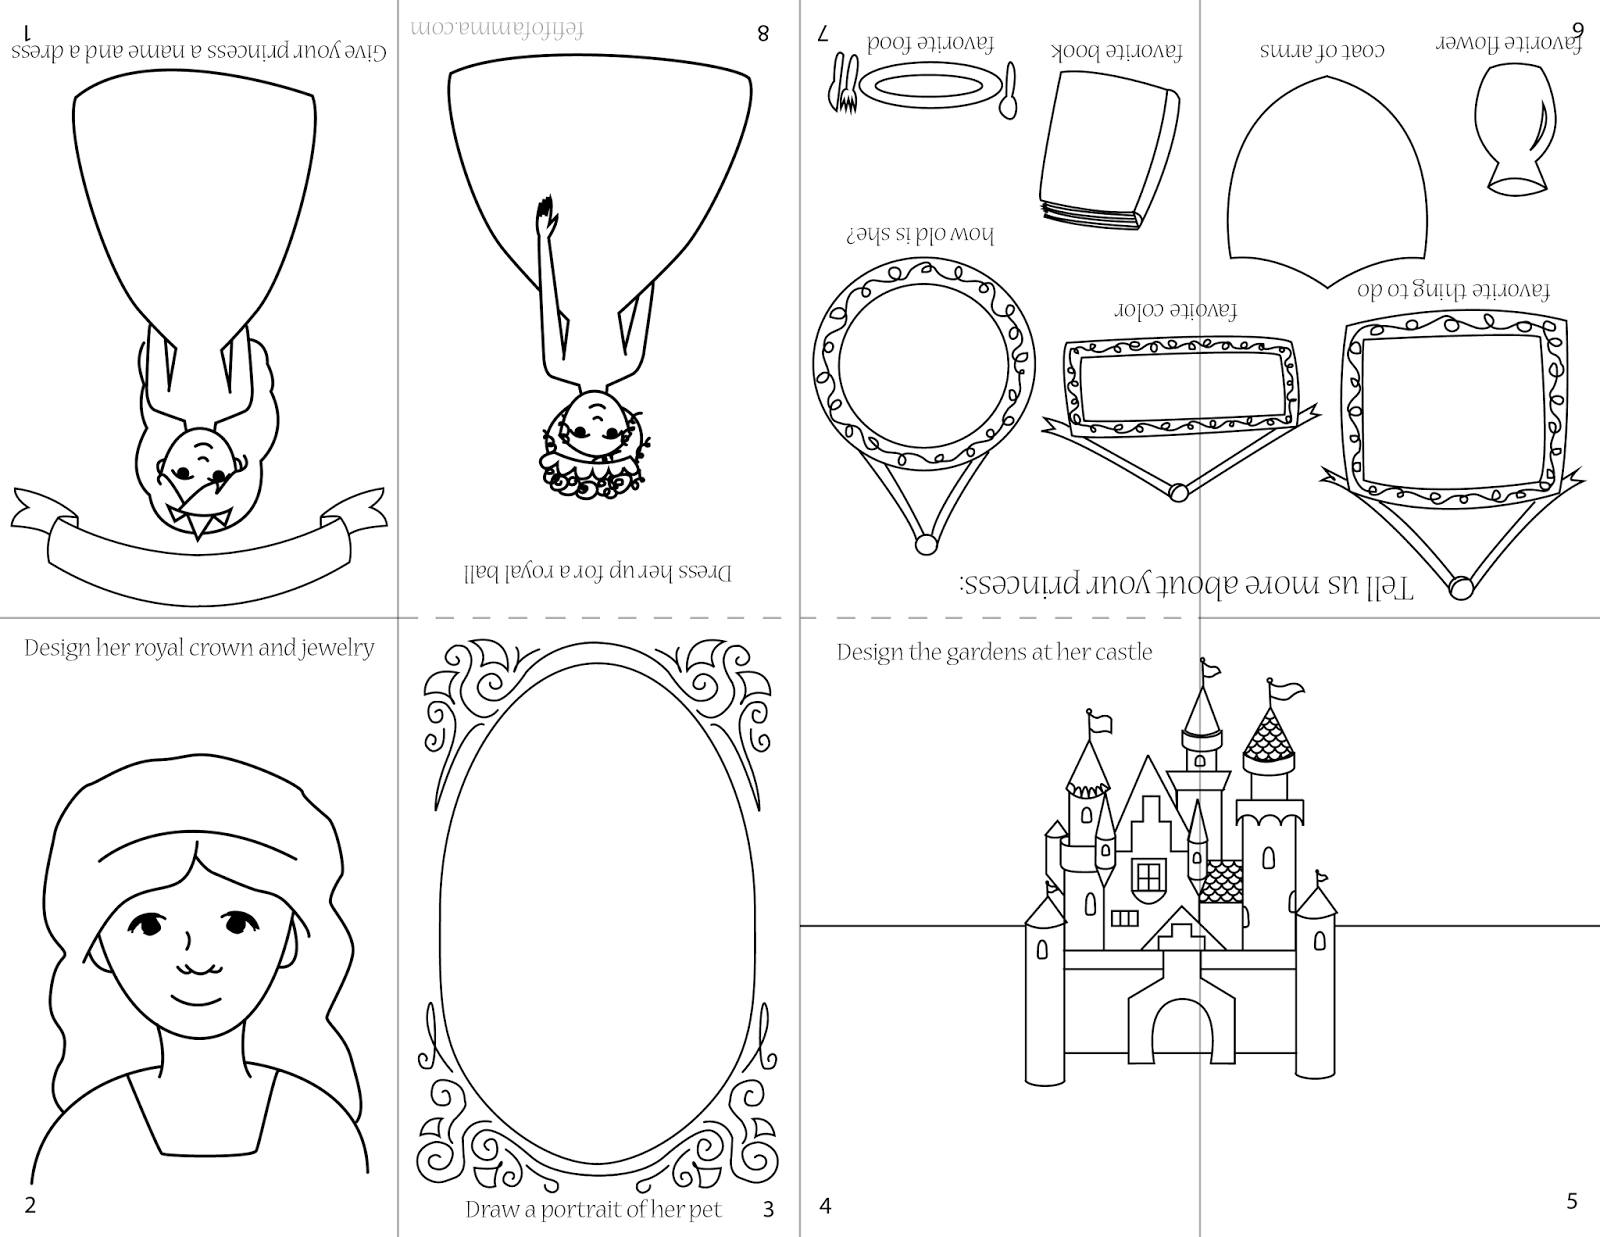 Generic princess coloring pages - Right Click And Select Save Image As To Download Image And Print As A Full Letter Page Don T Fit To Page In Your Printer Settings Or It Will Offset The